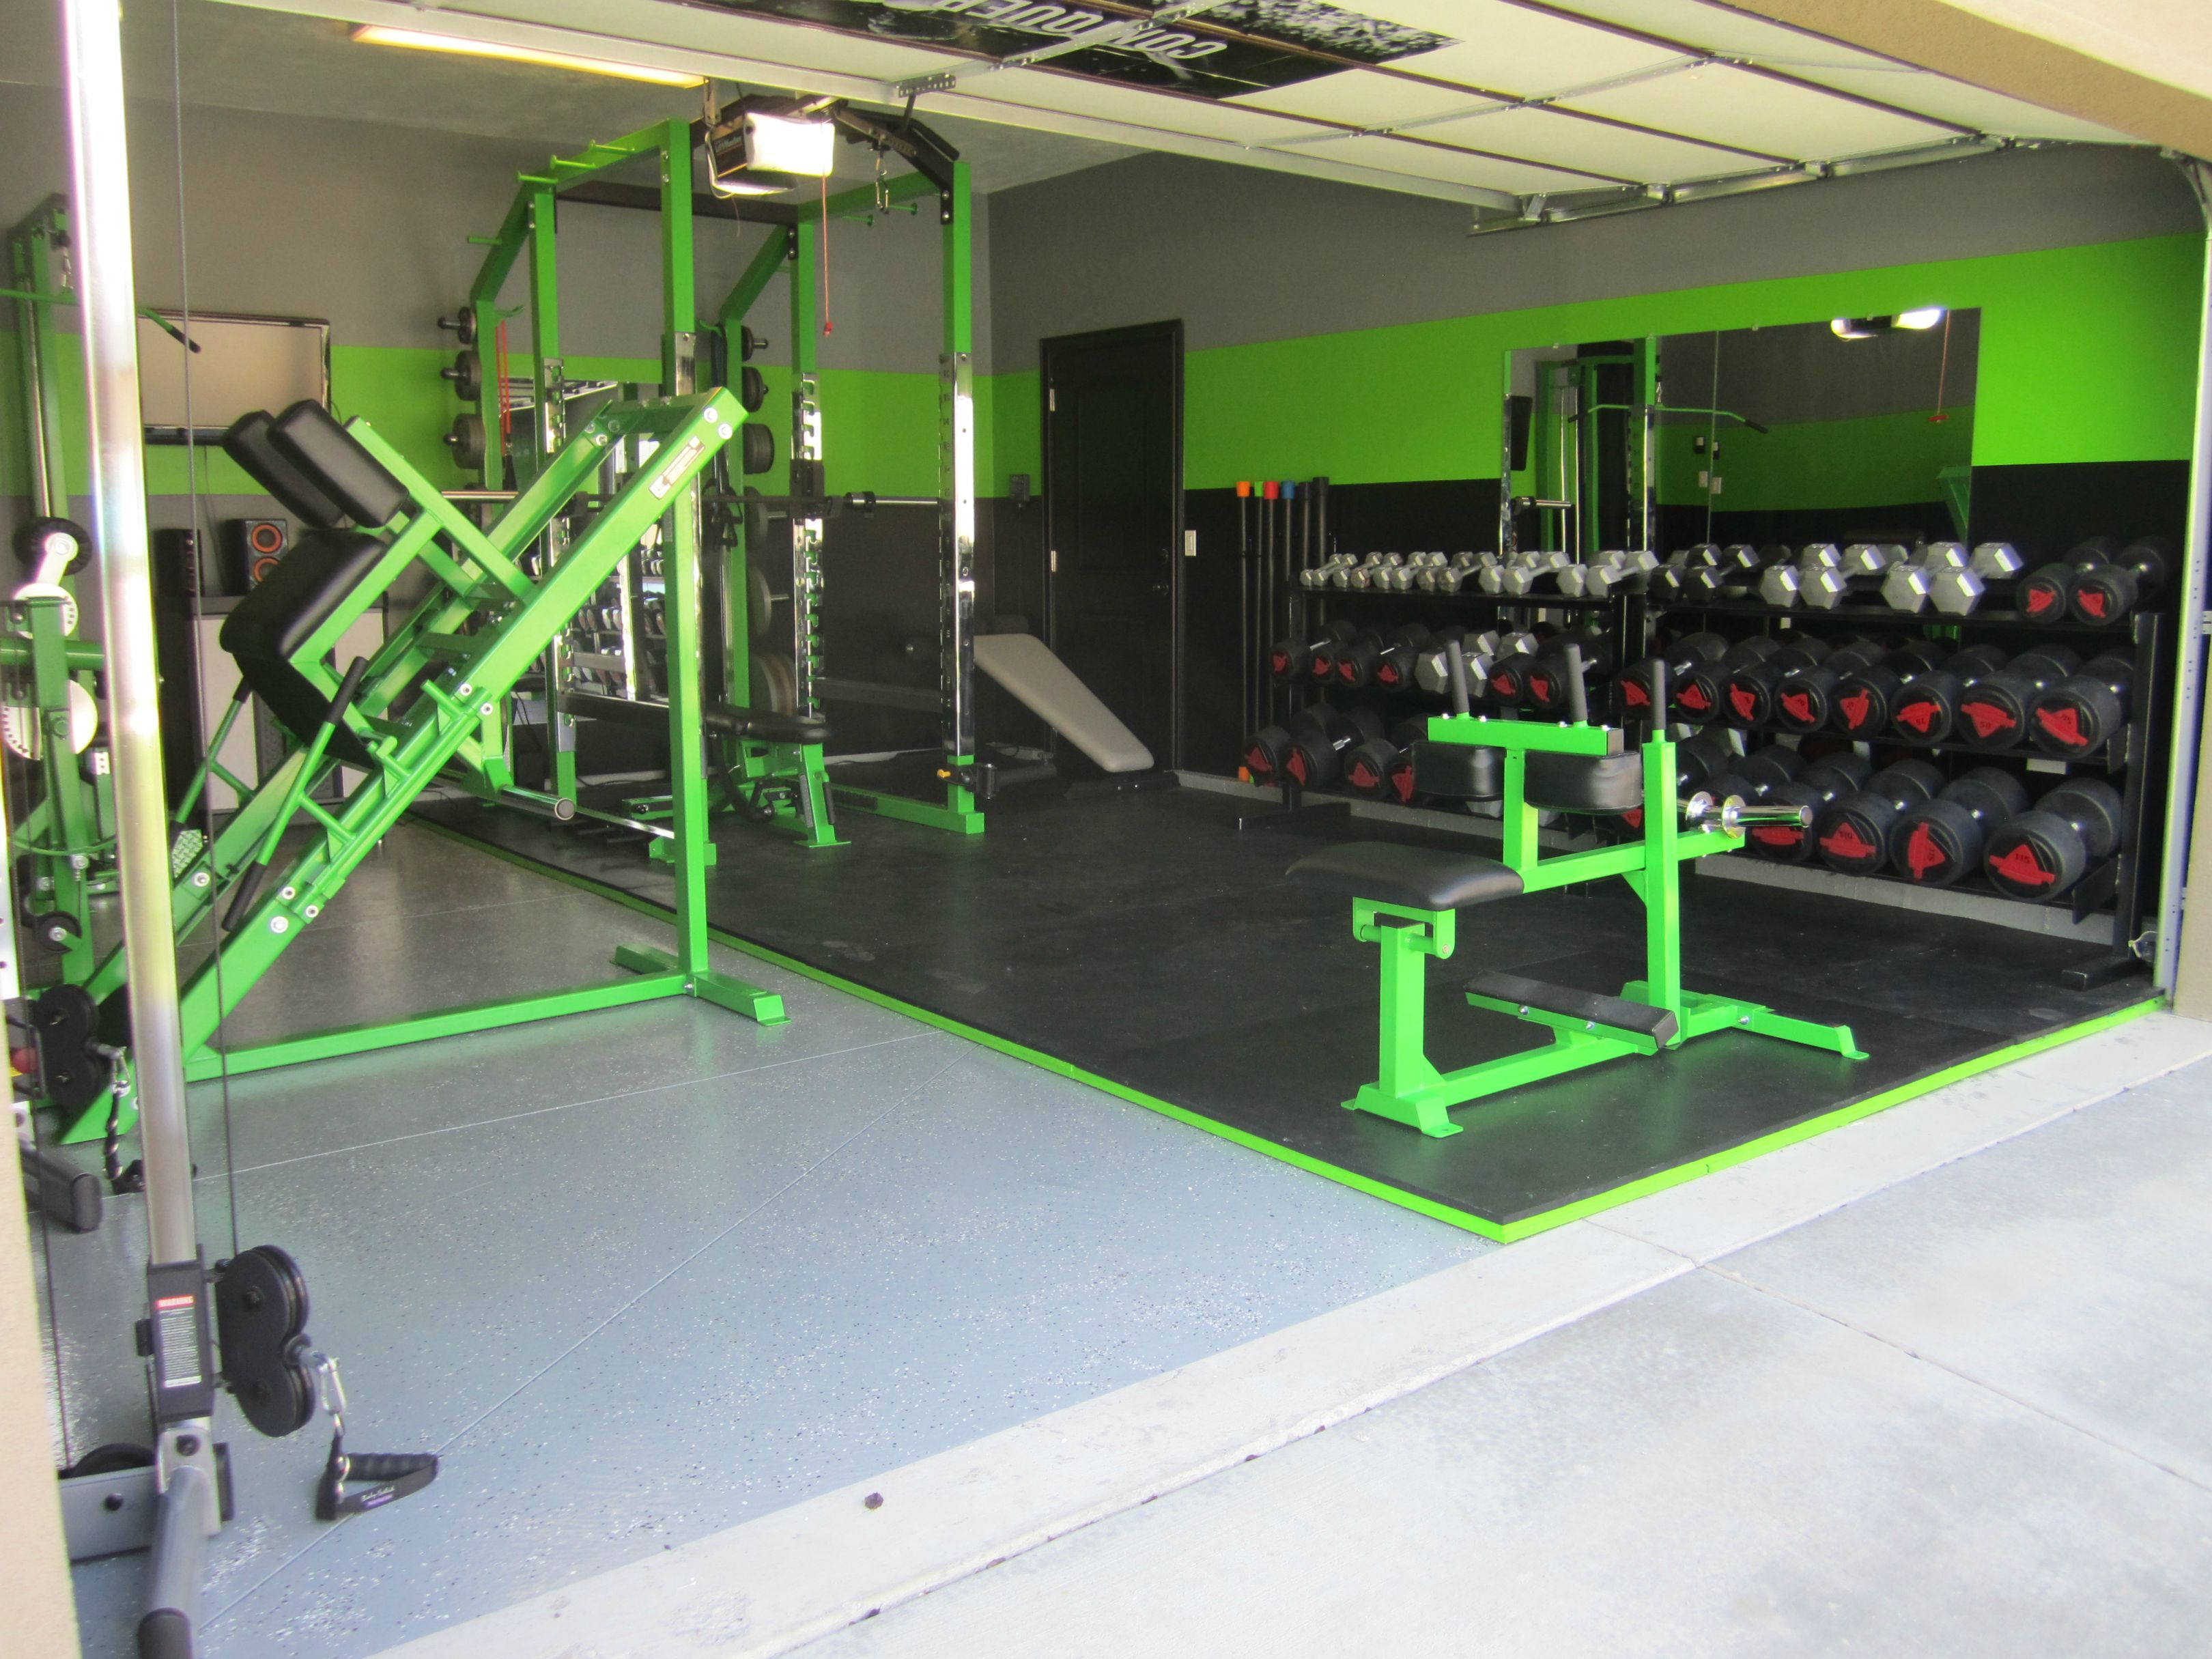 Home Gym Design: Just For The Health Of It